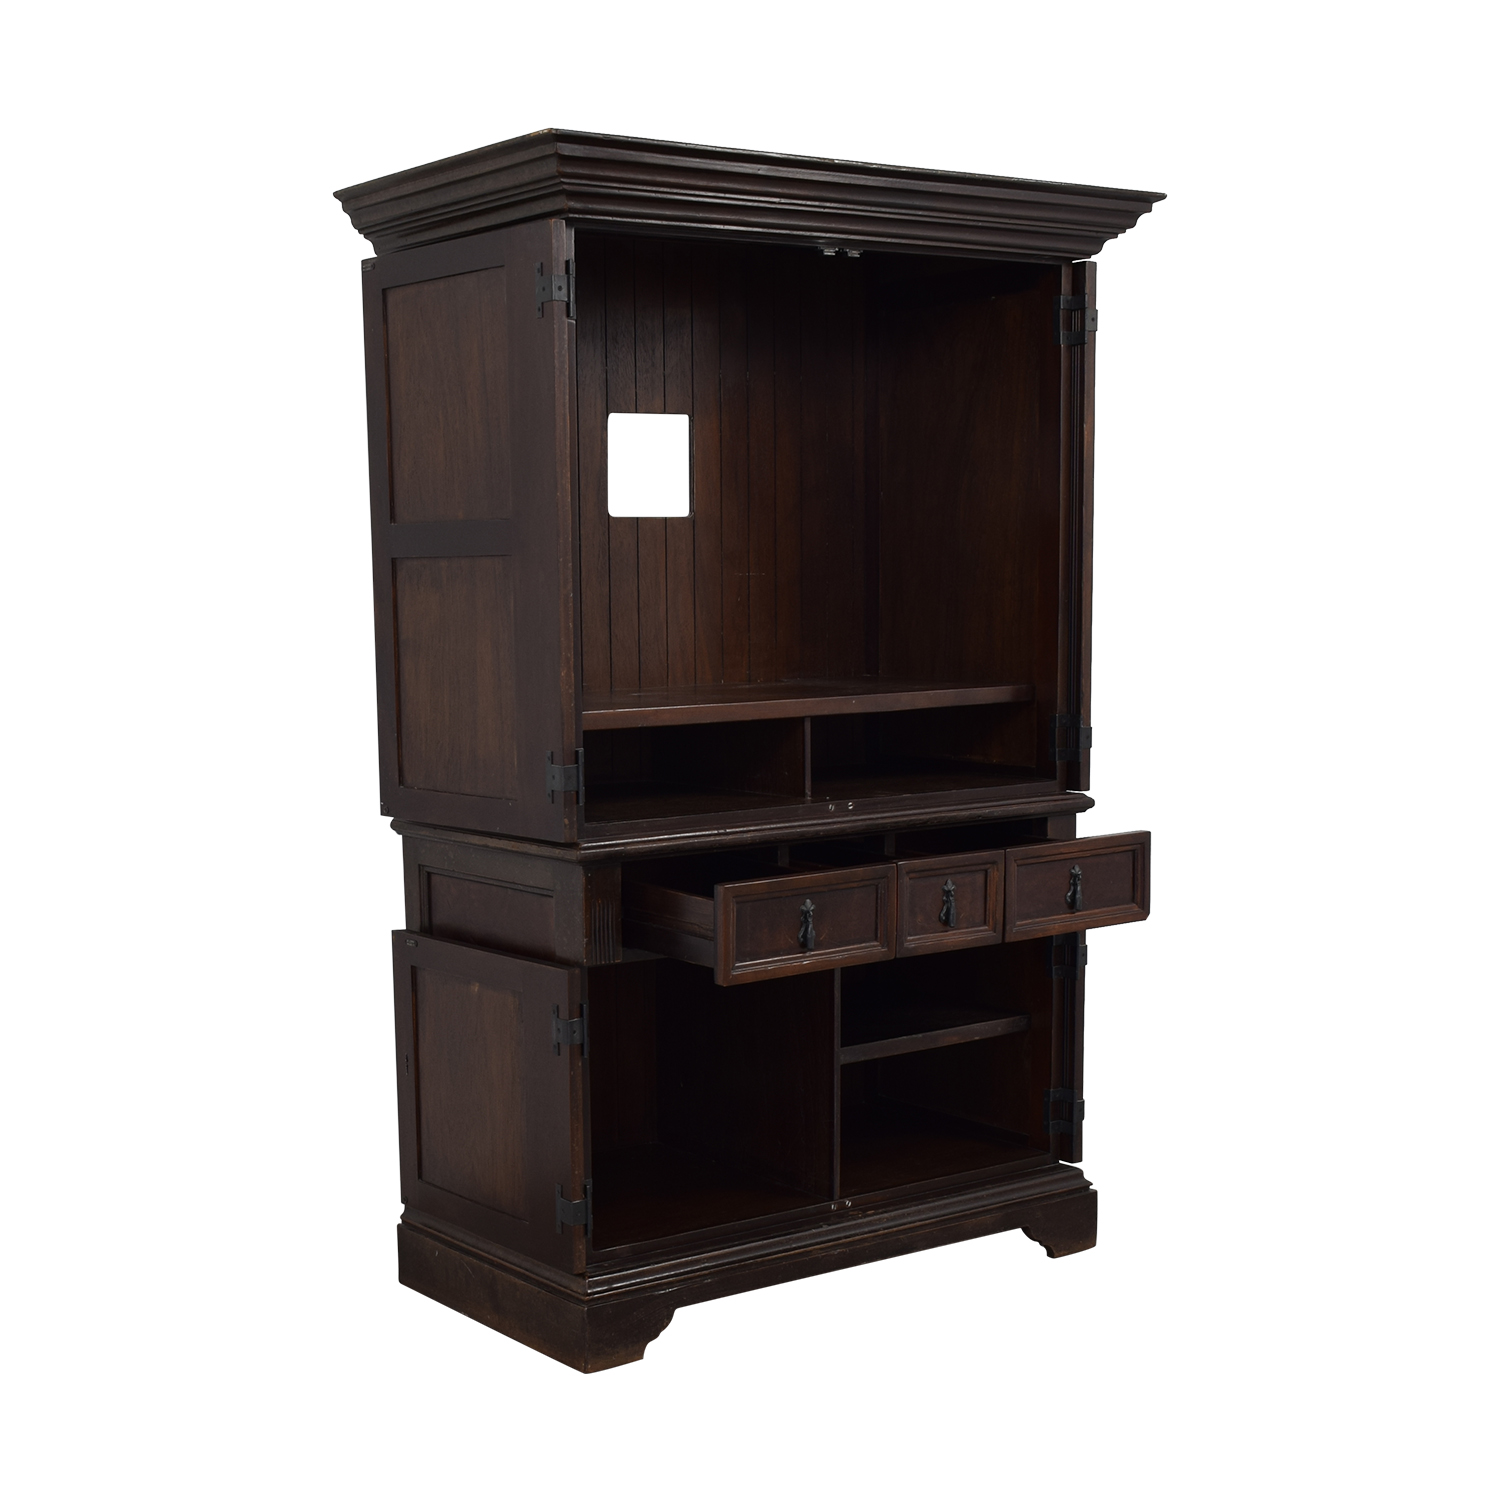 South Cone Furniture South Cone Furniture Large Armoire nj